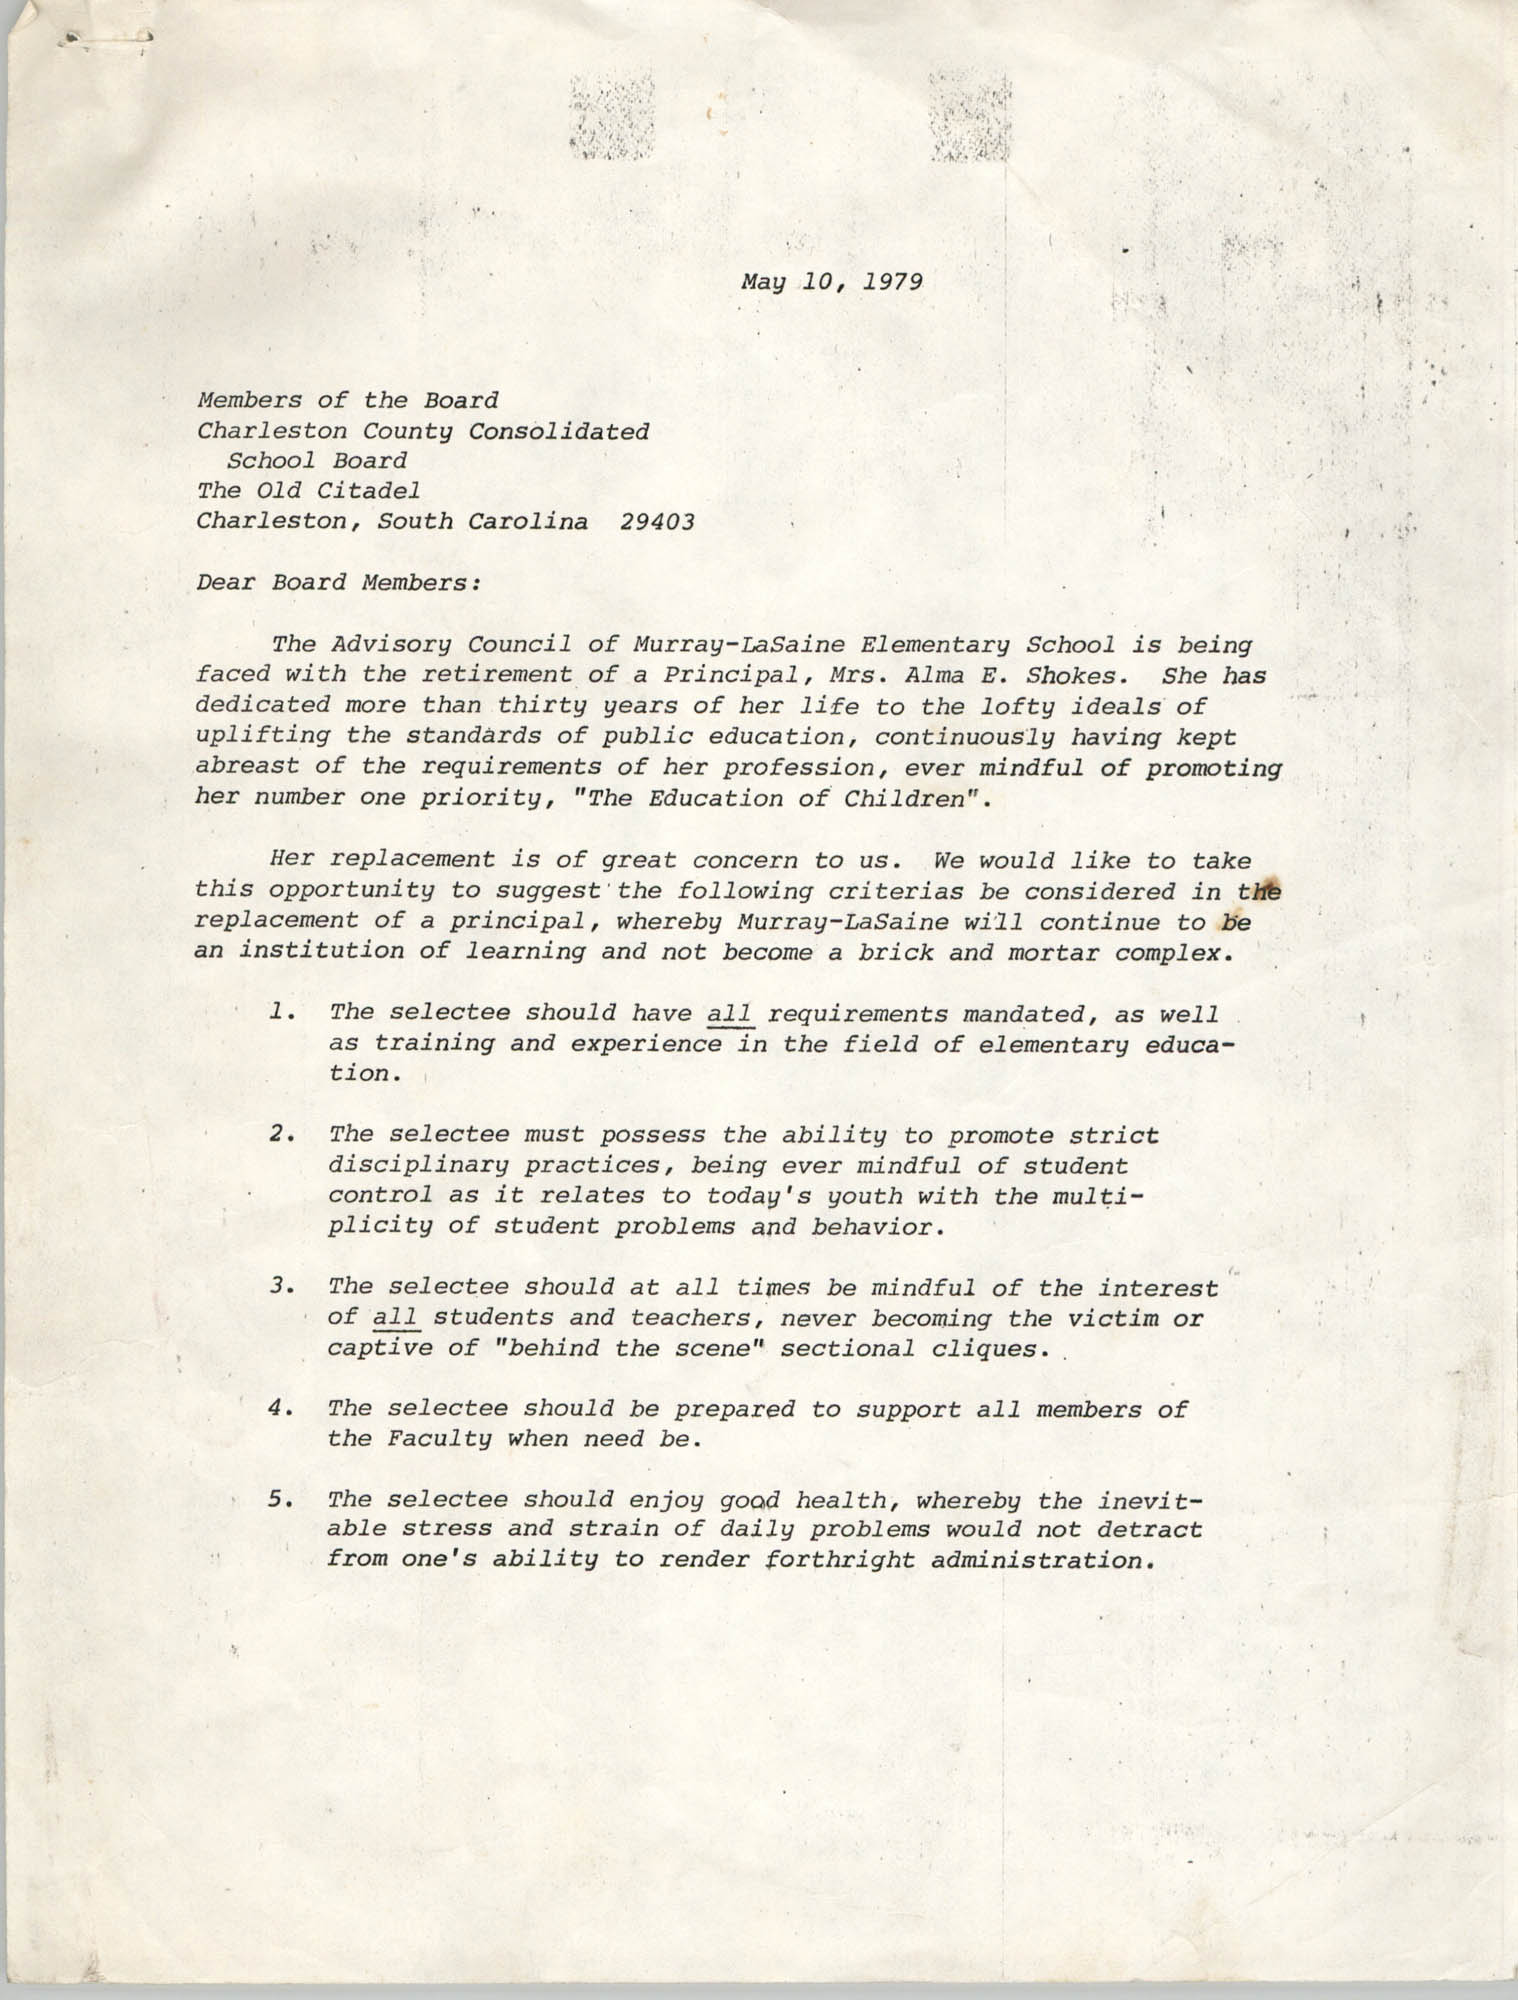 Letter from J. Arthur Brown to Members of the Charleston County Consolidated School Board, May 10, 1979